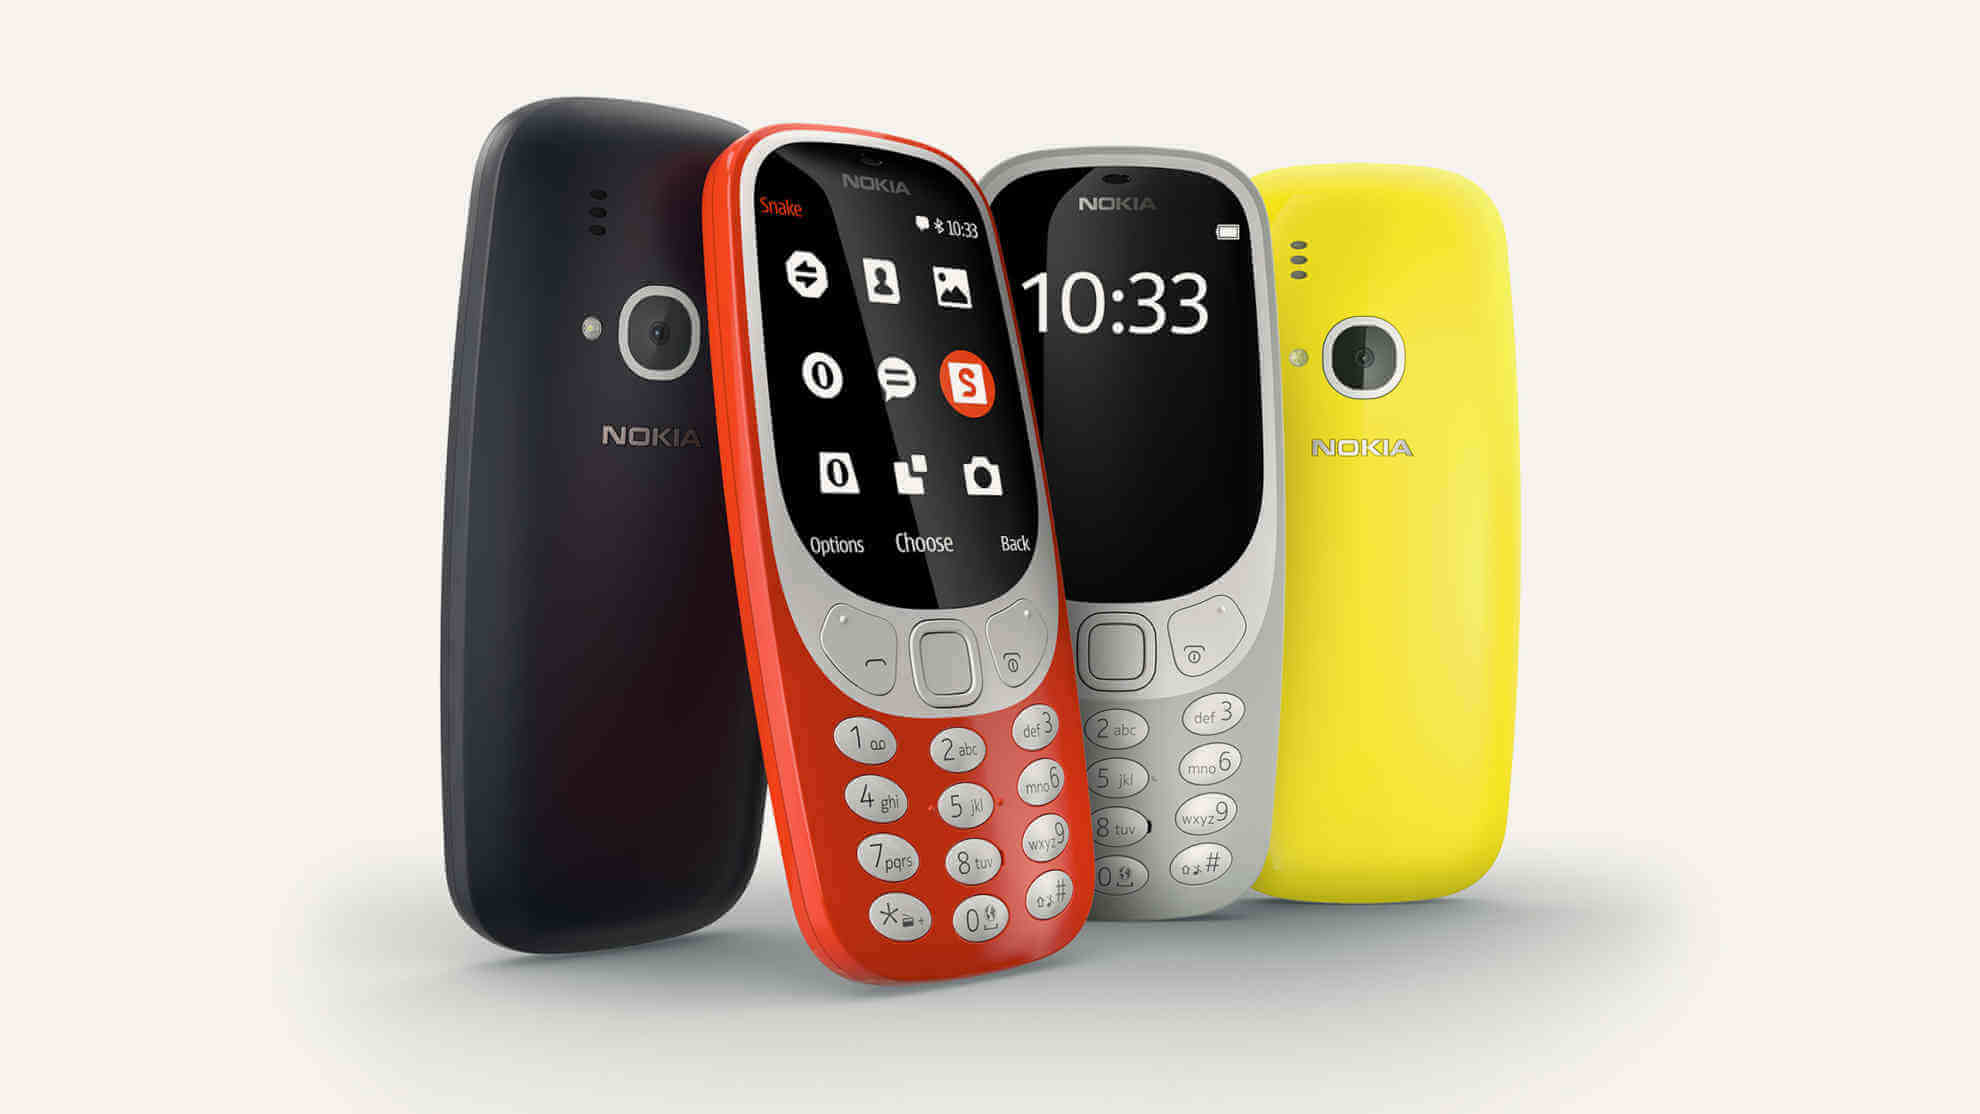 Nokia 3310 relaunched with better design and battery - MWC 17